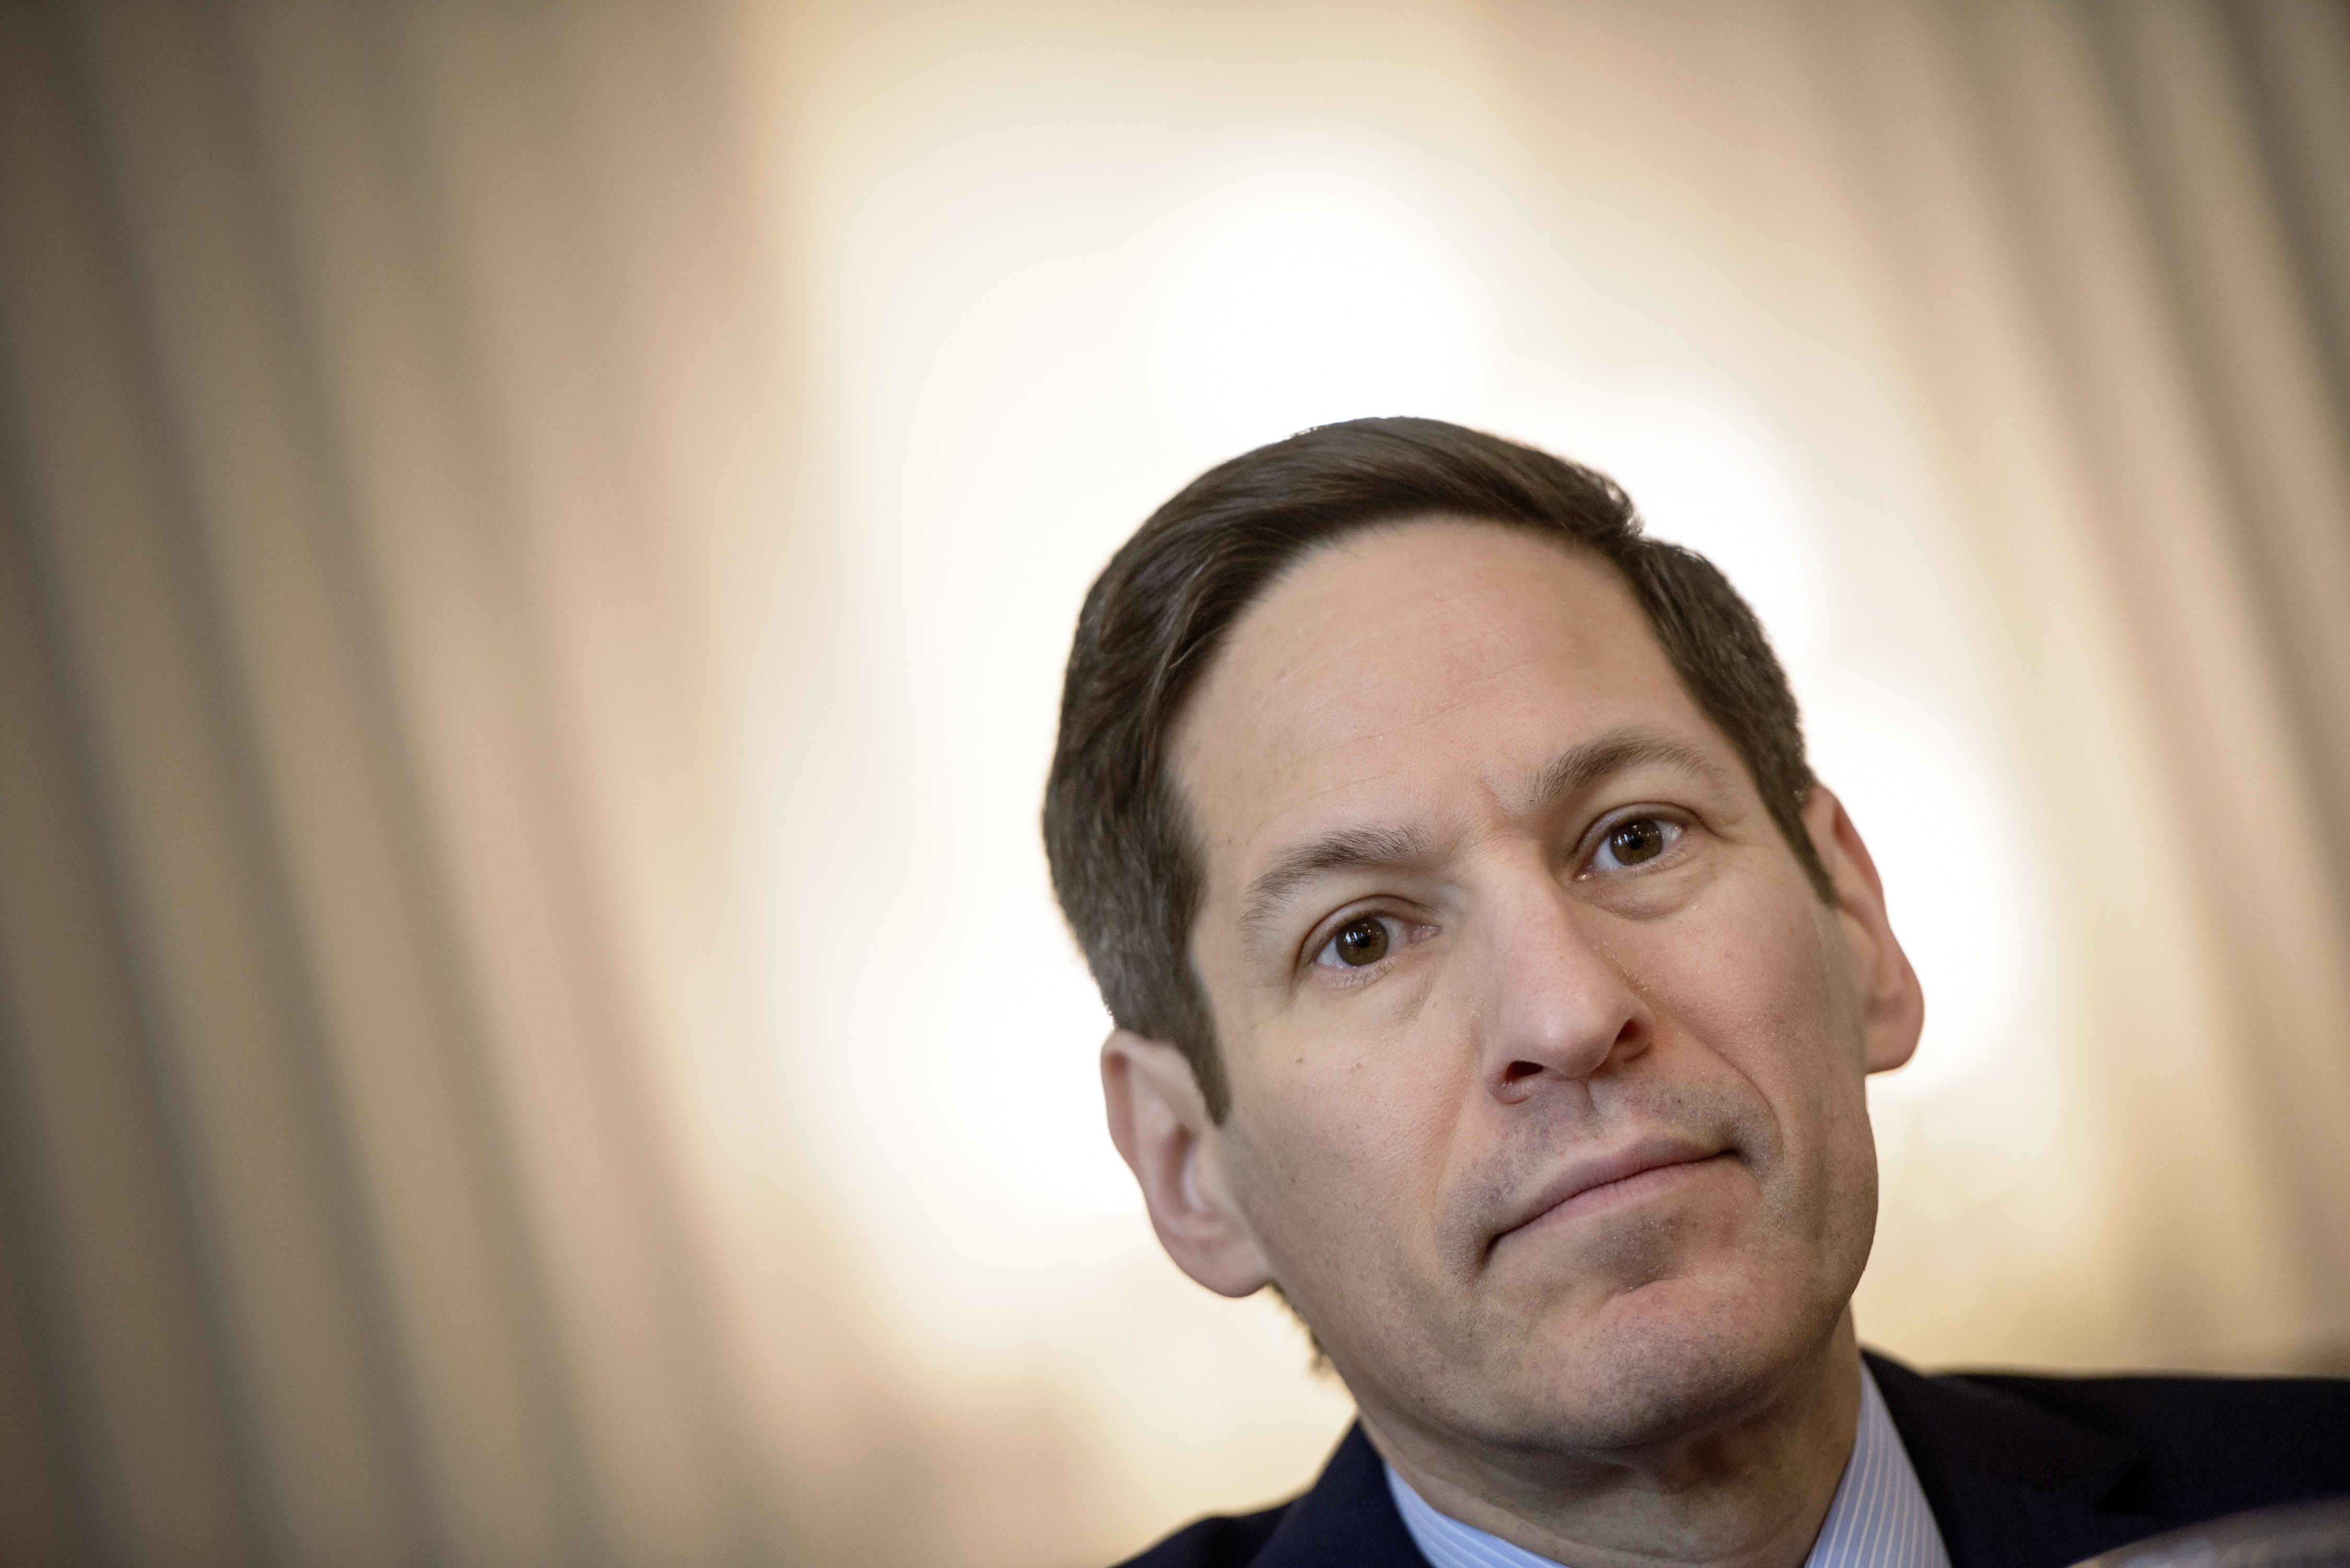 Tom Frieden, director of the Centers for Disease Control and Prevention, listens during a press conference on Capitol Hill on Jan. 13, 2015, in Washington